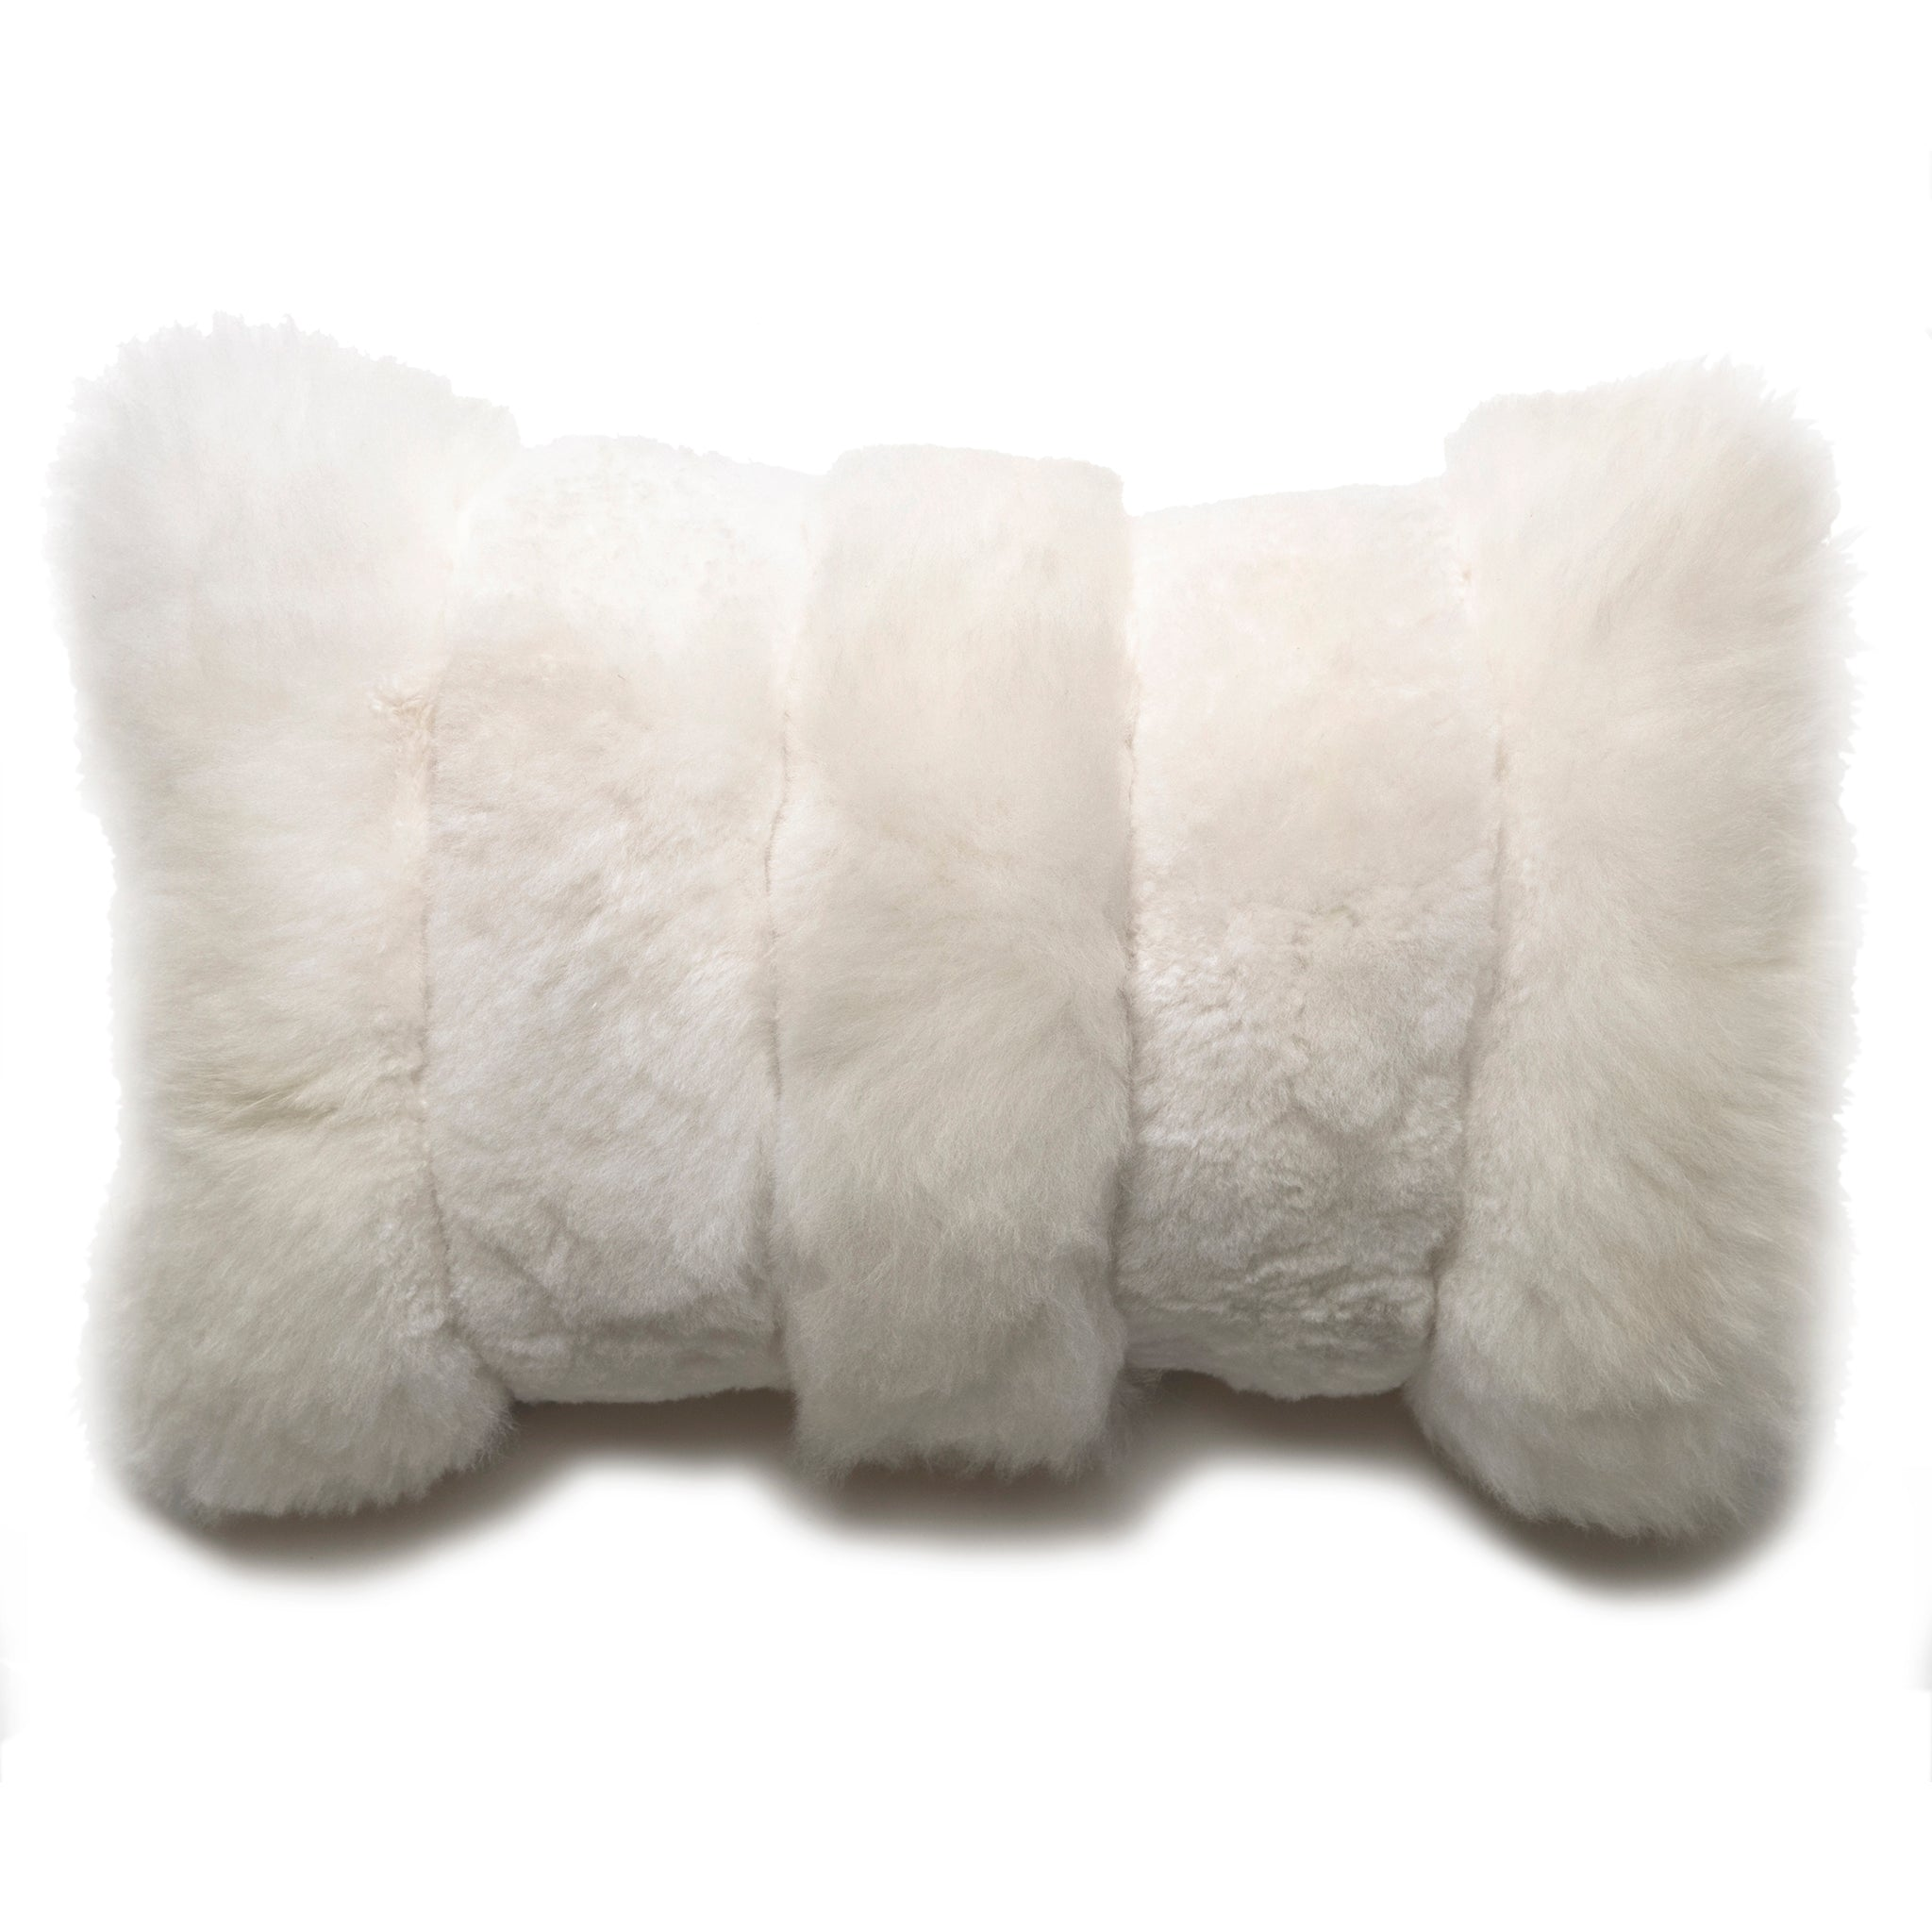 Intiearth Baby alpaca fur decorative throw pillow white lumbar stripe design